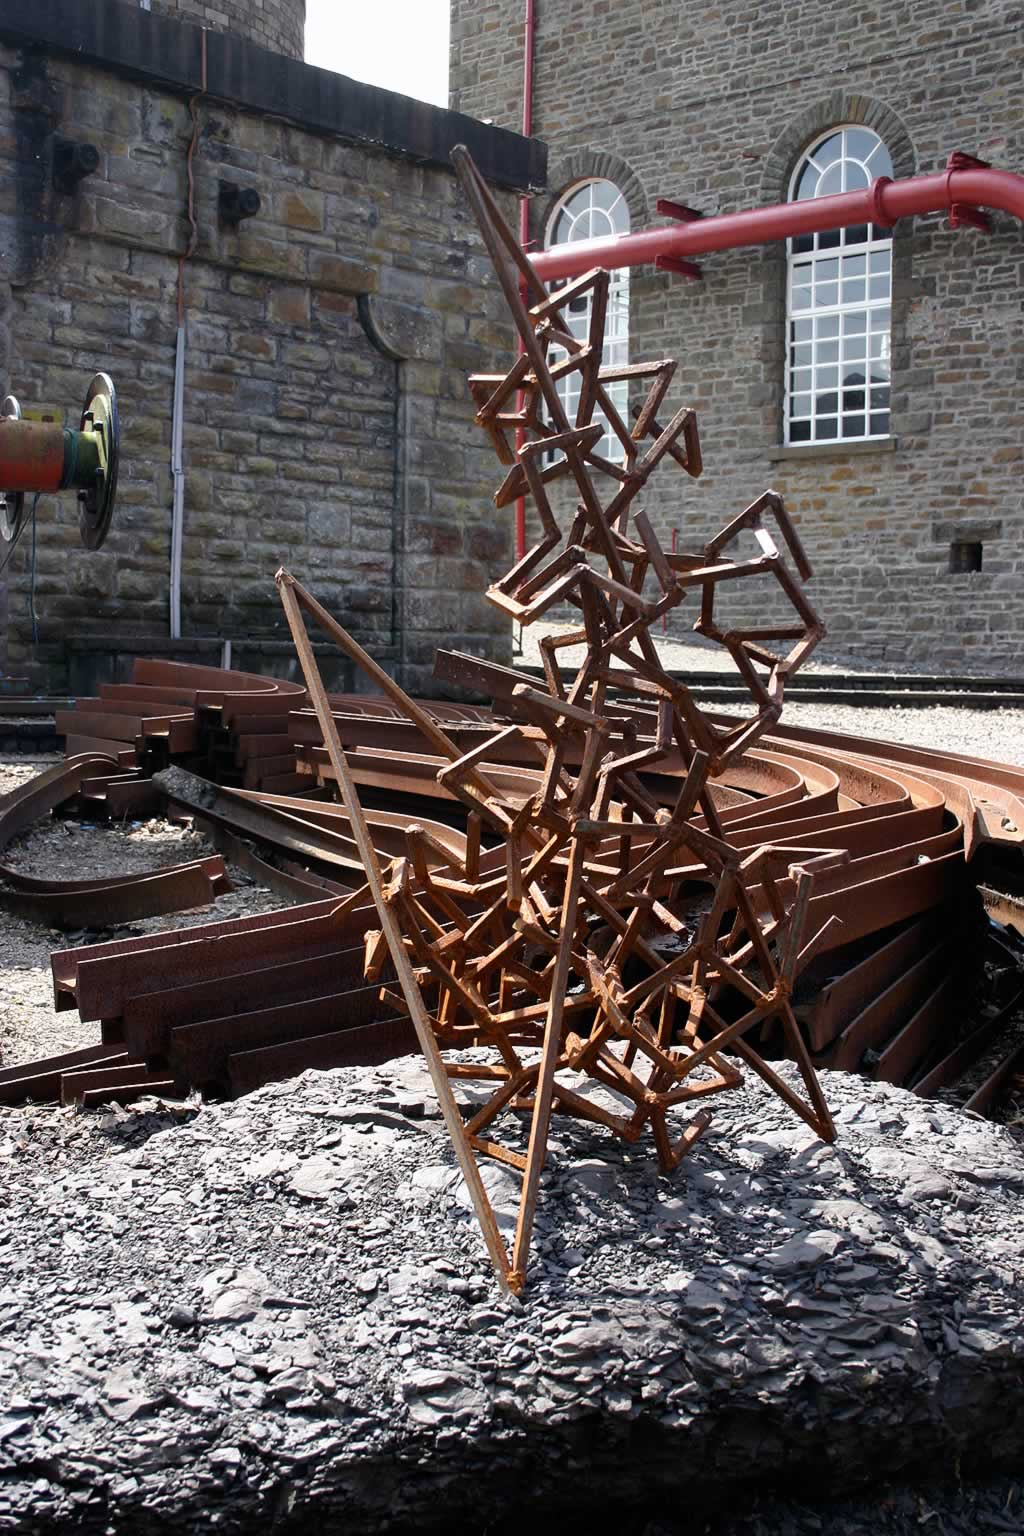 King-Post at Rhondda Heritage Park (abstract sculpture) by sculptor Ian Campbell-Briggs